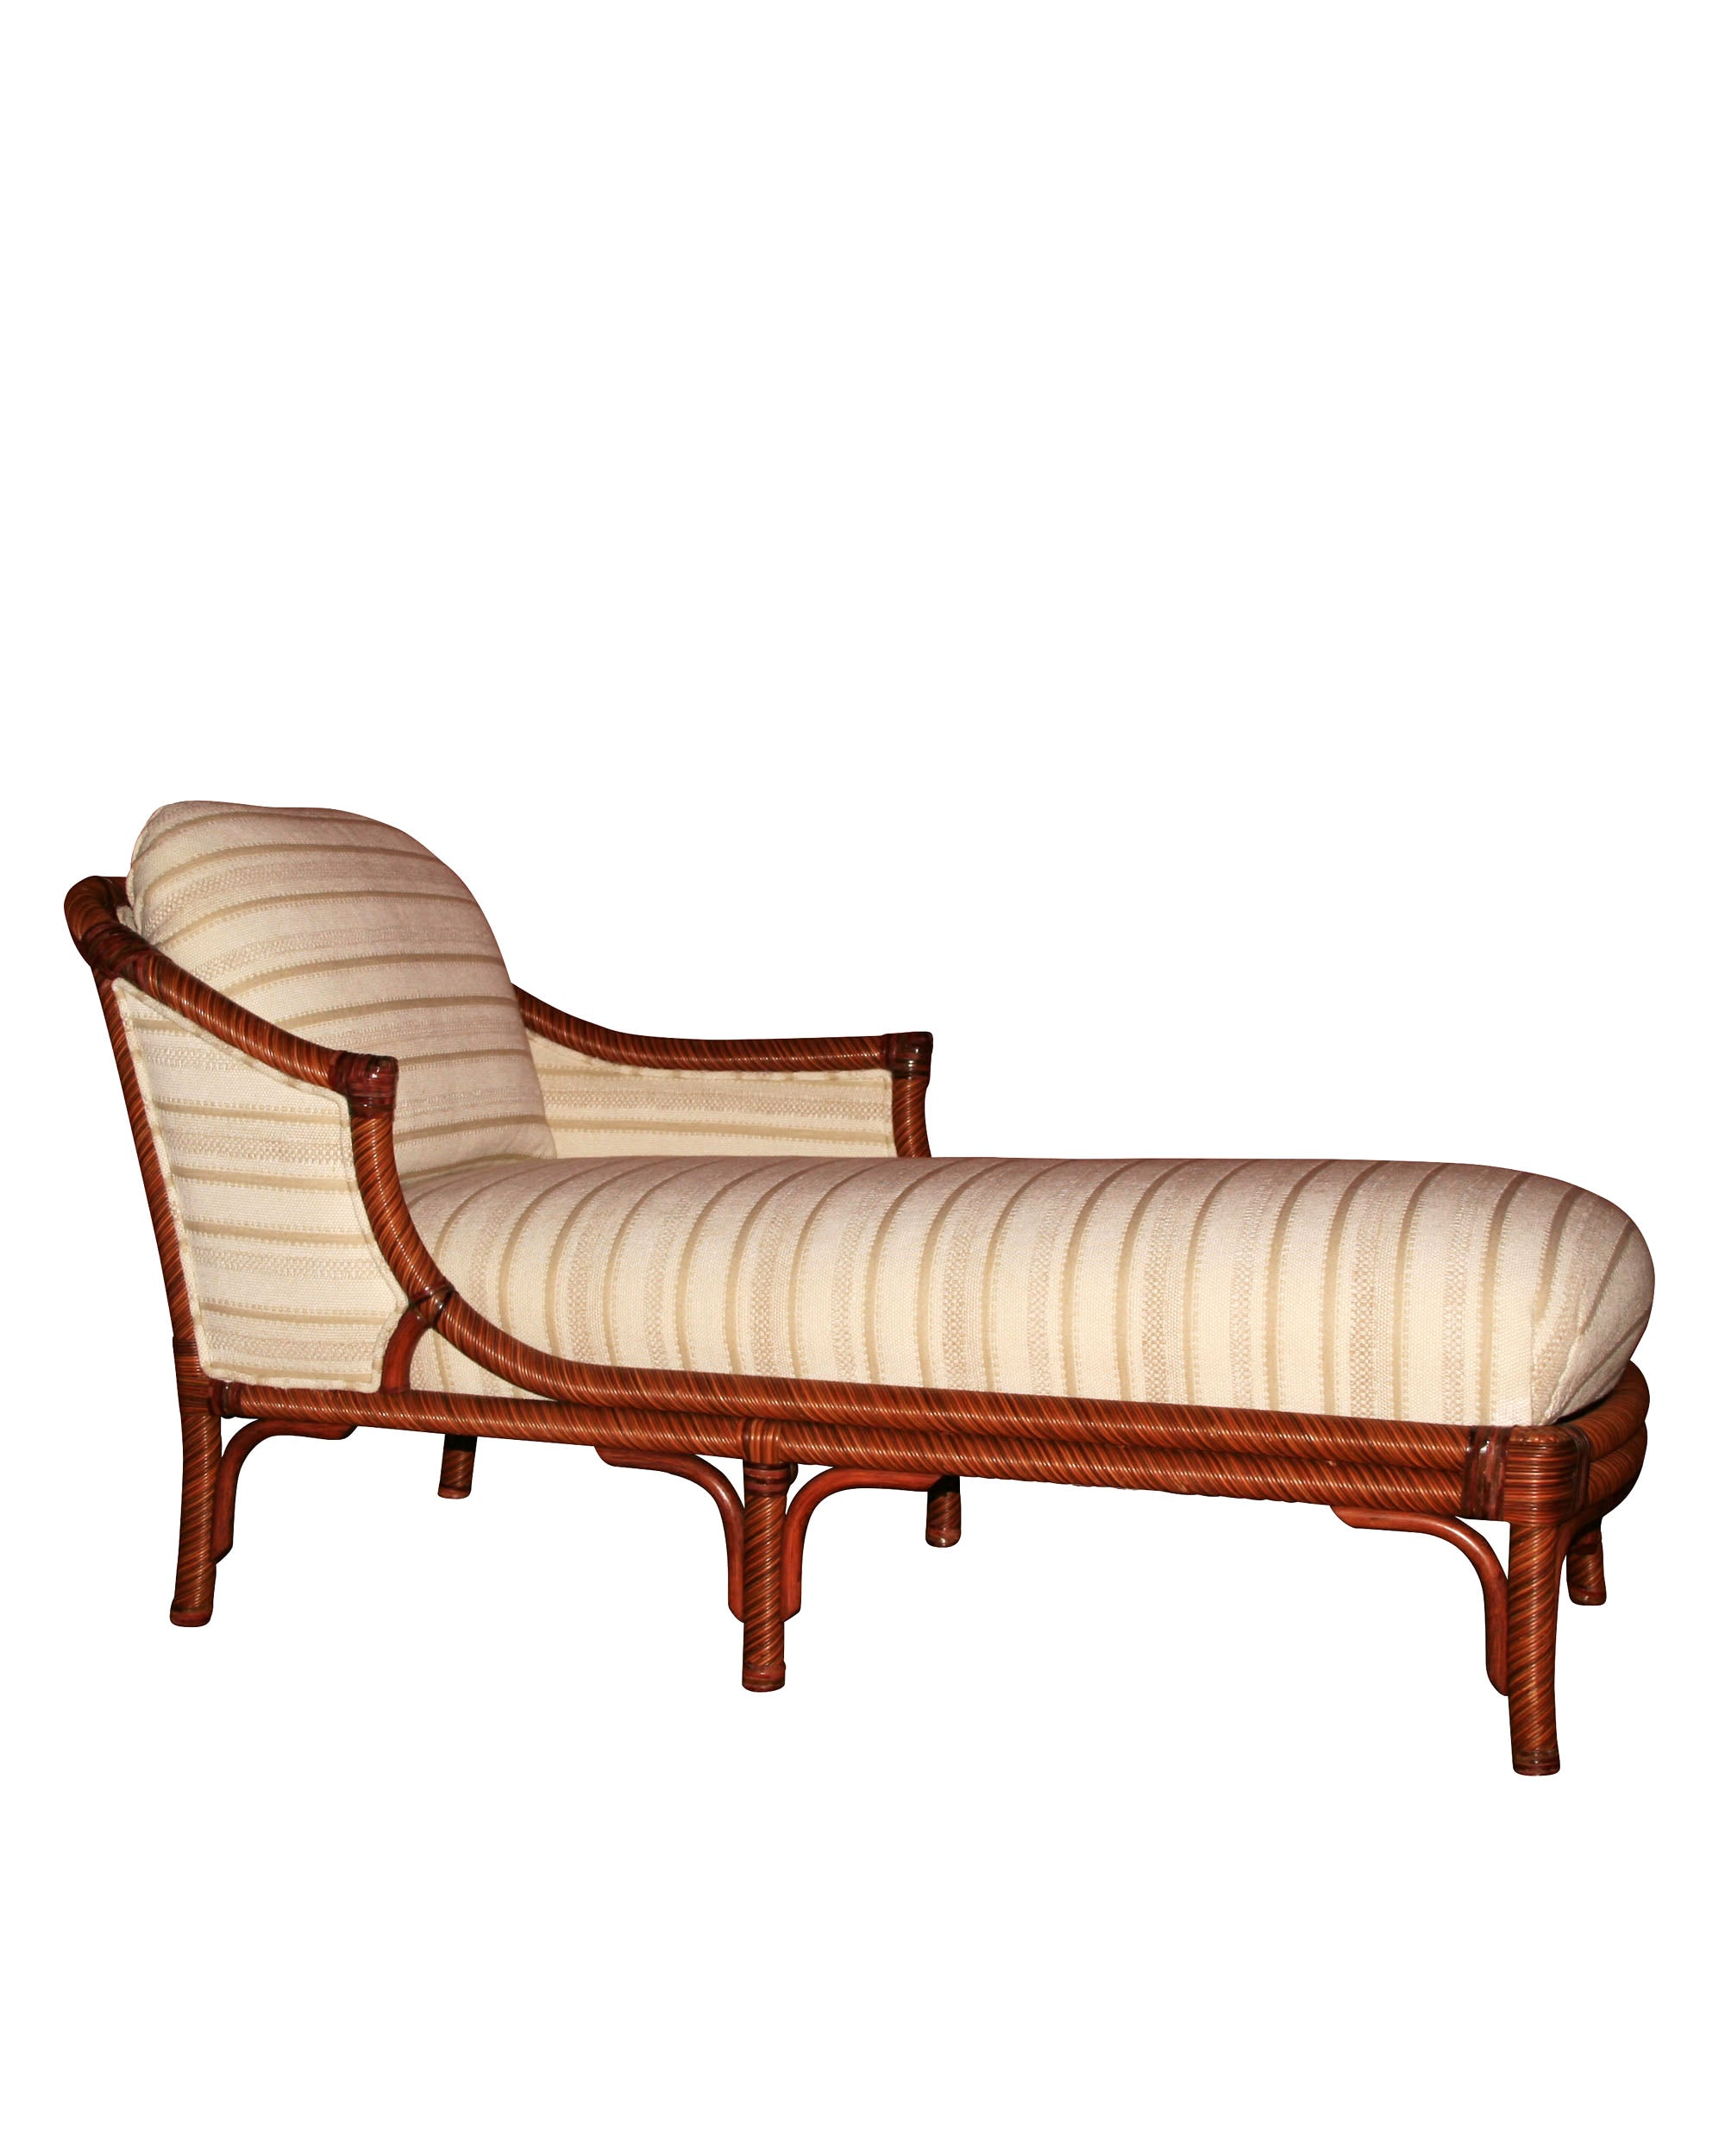 Rattan and leather vintage chaise longue